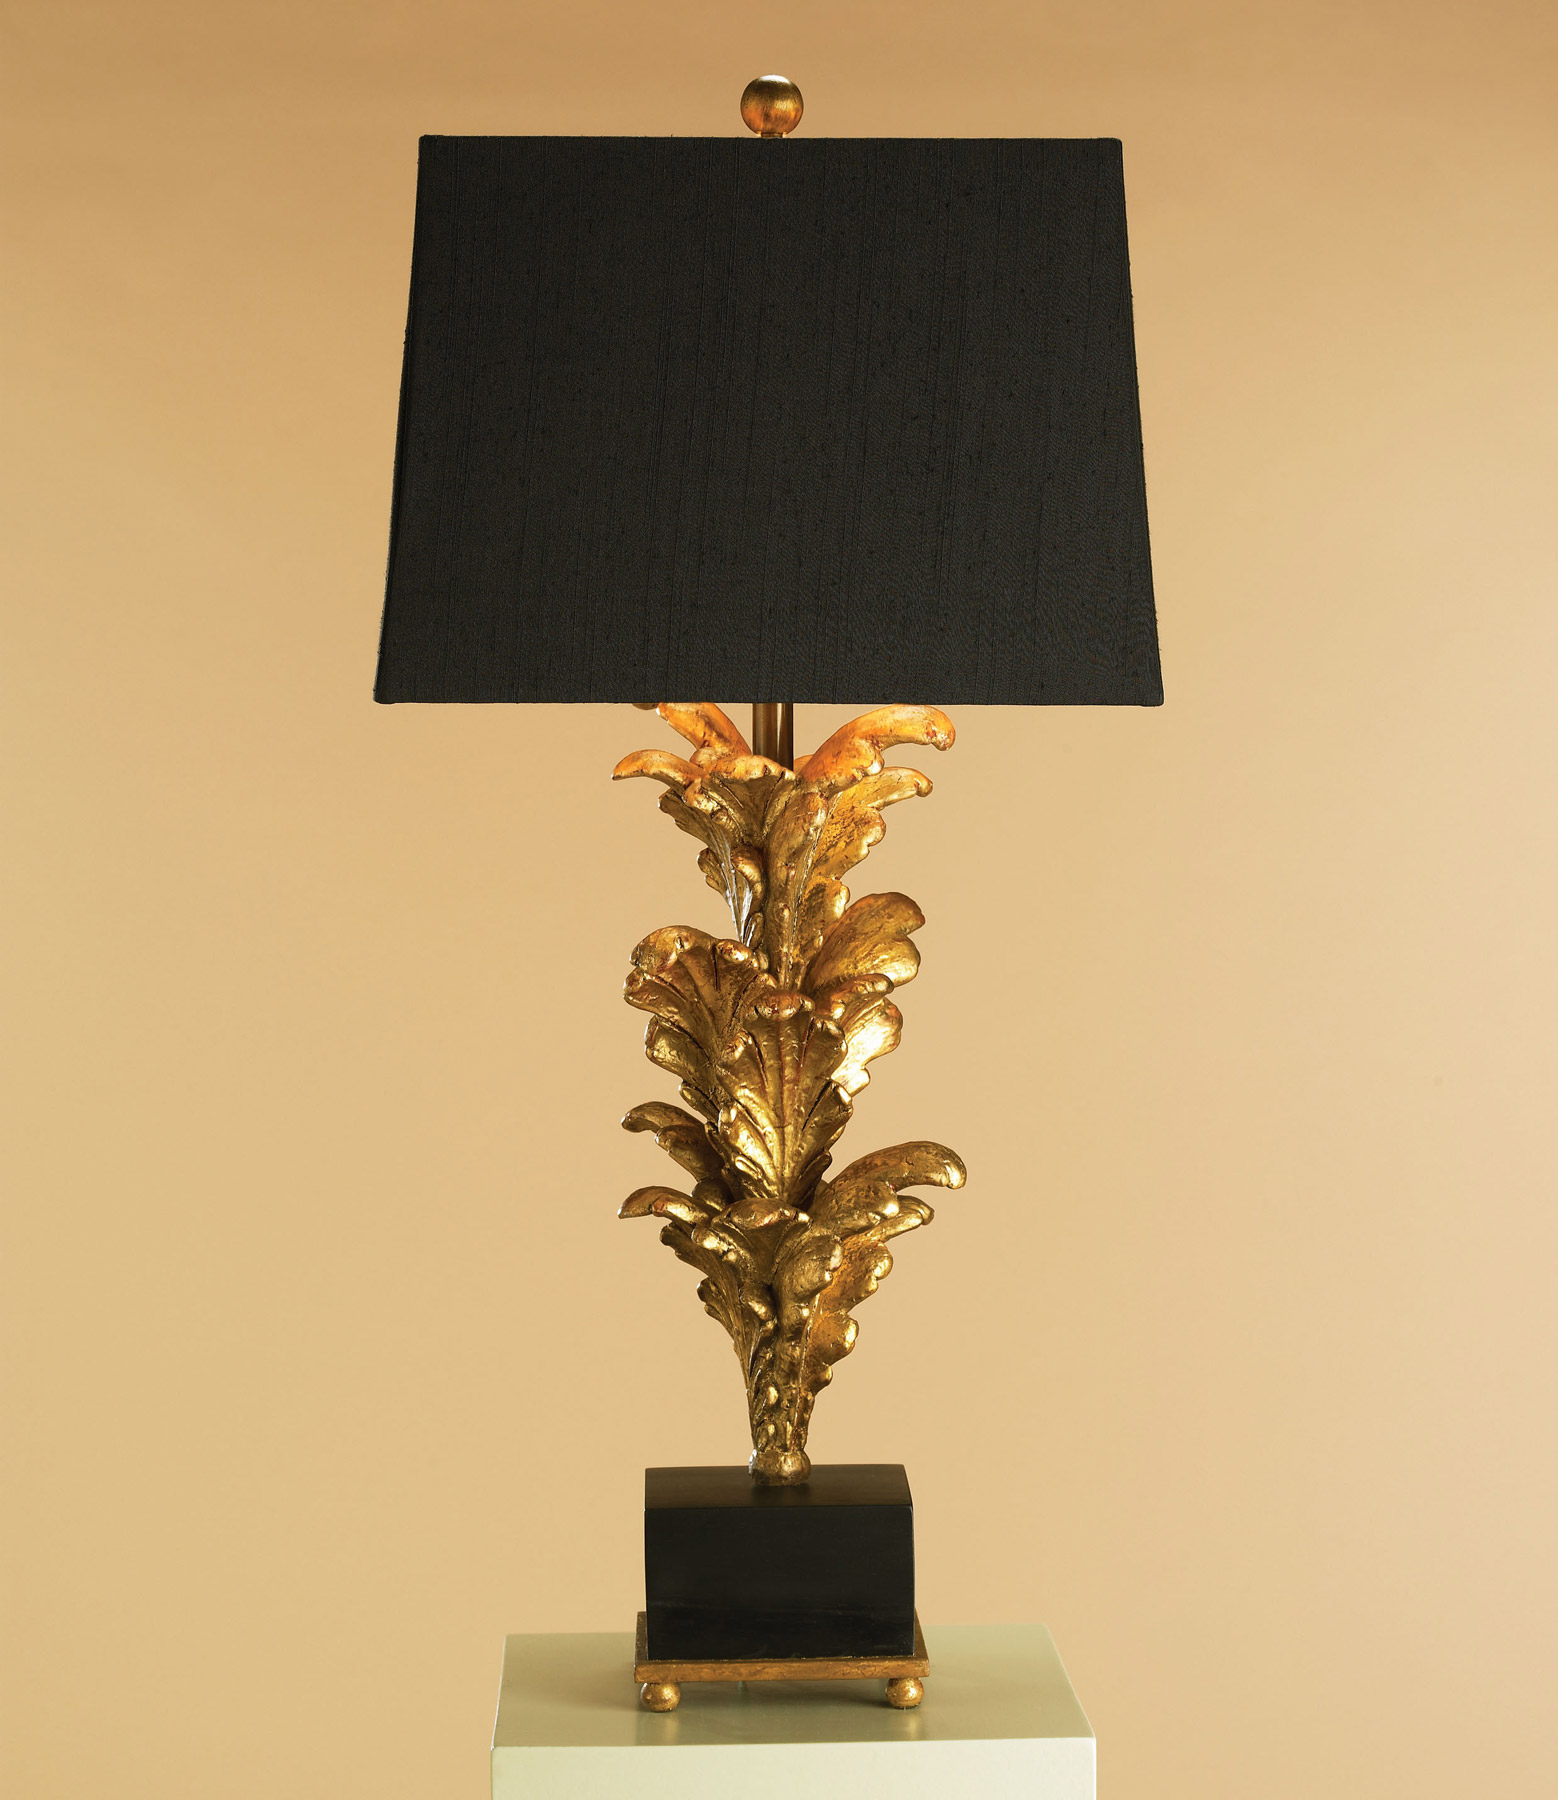 home lamps table lamps standard table lamps currey and co. Black Bedroom Furniture Sets. Home Design Ideas